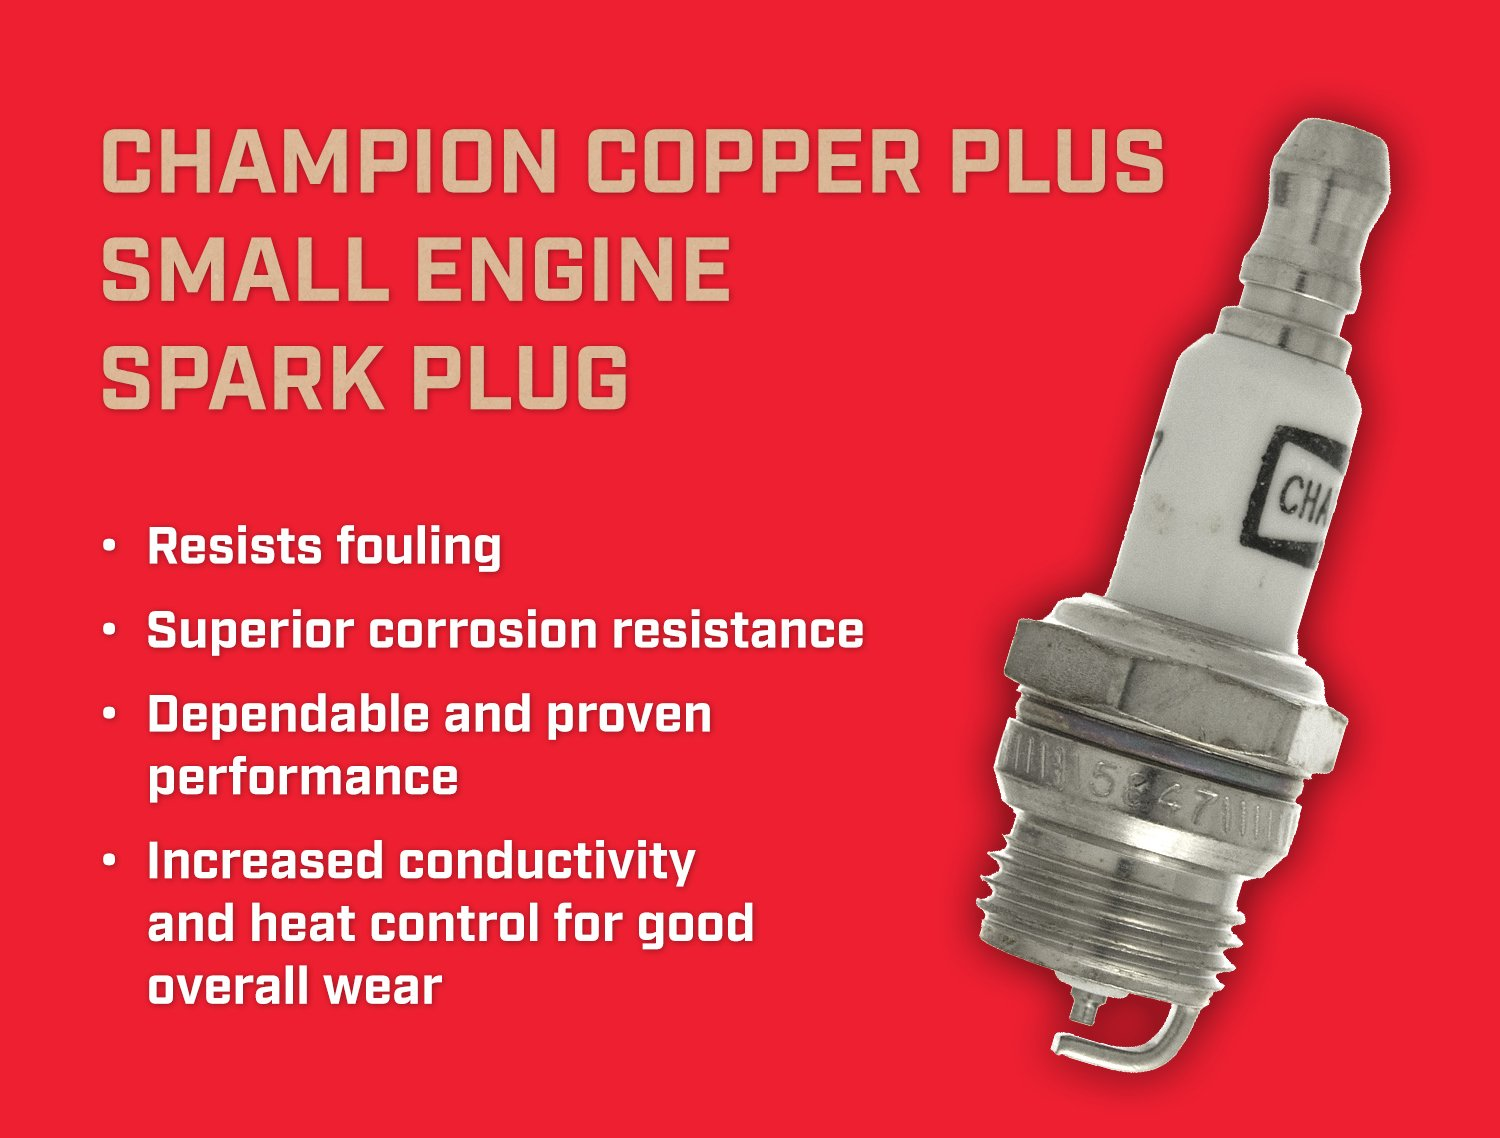 Champion RDJ7J (860) Copper Plus Small Engine Replacement Spark Plug (Pack  of 1)